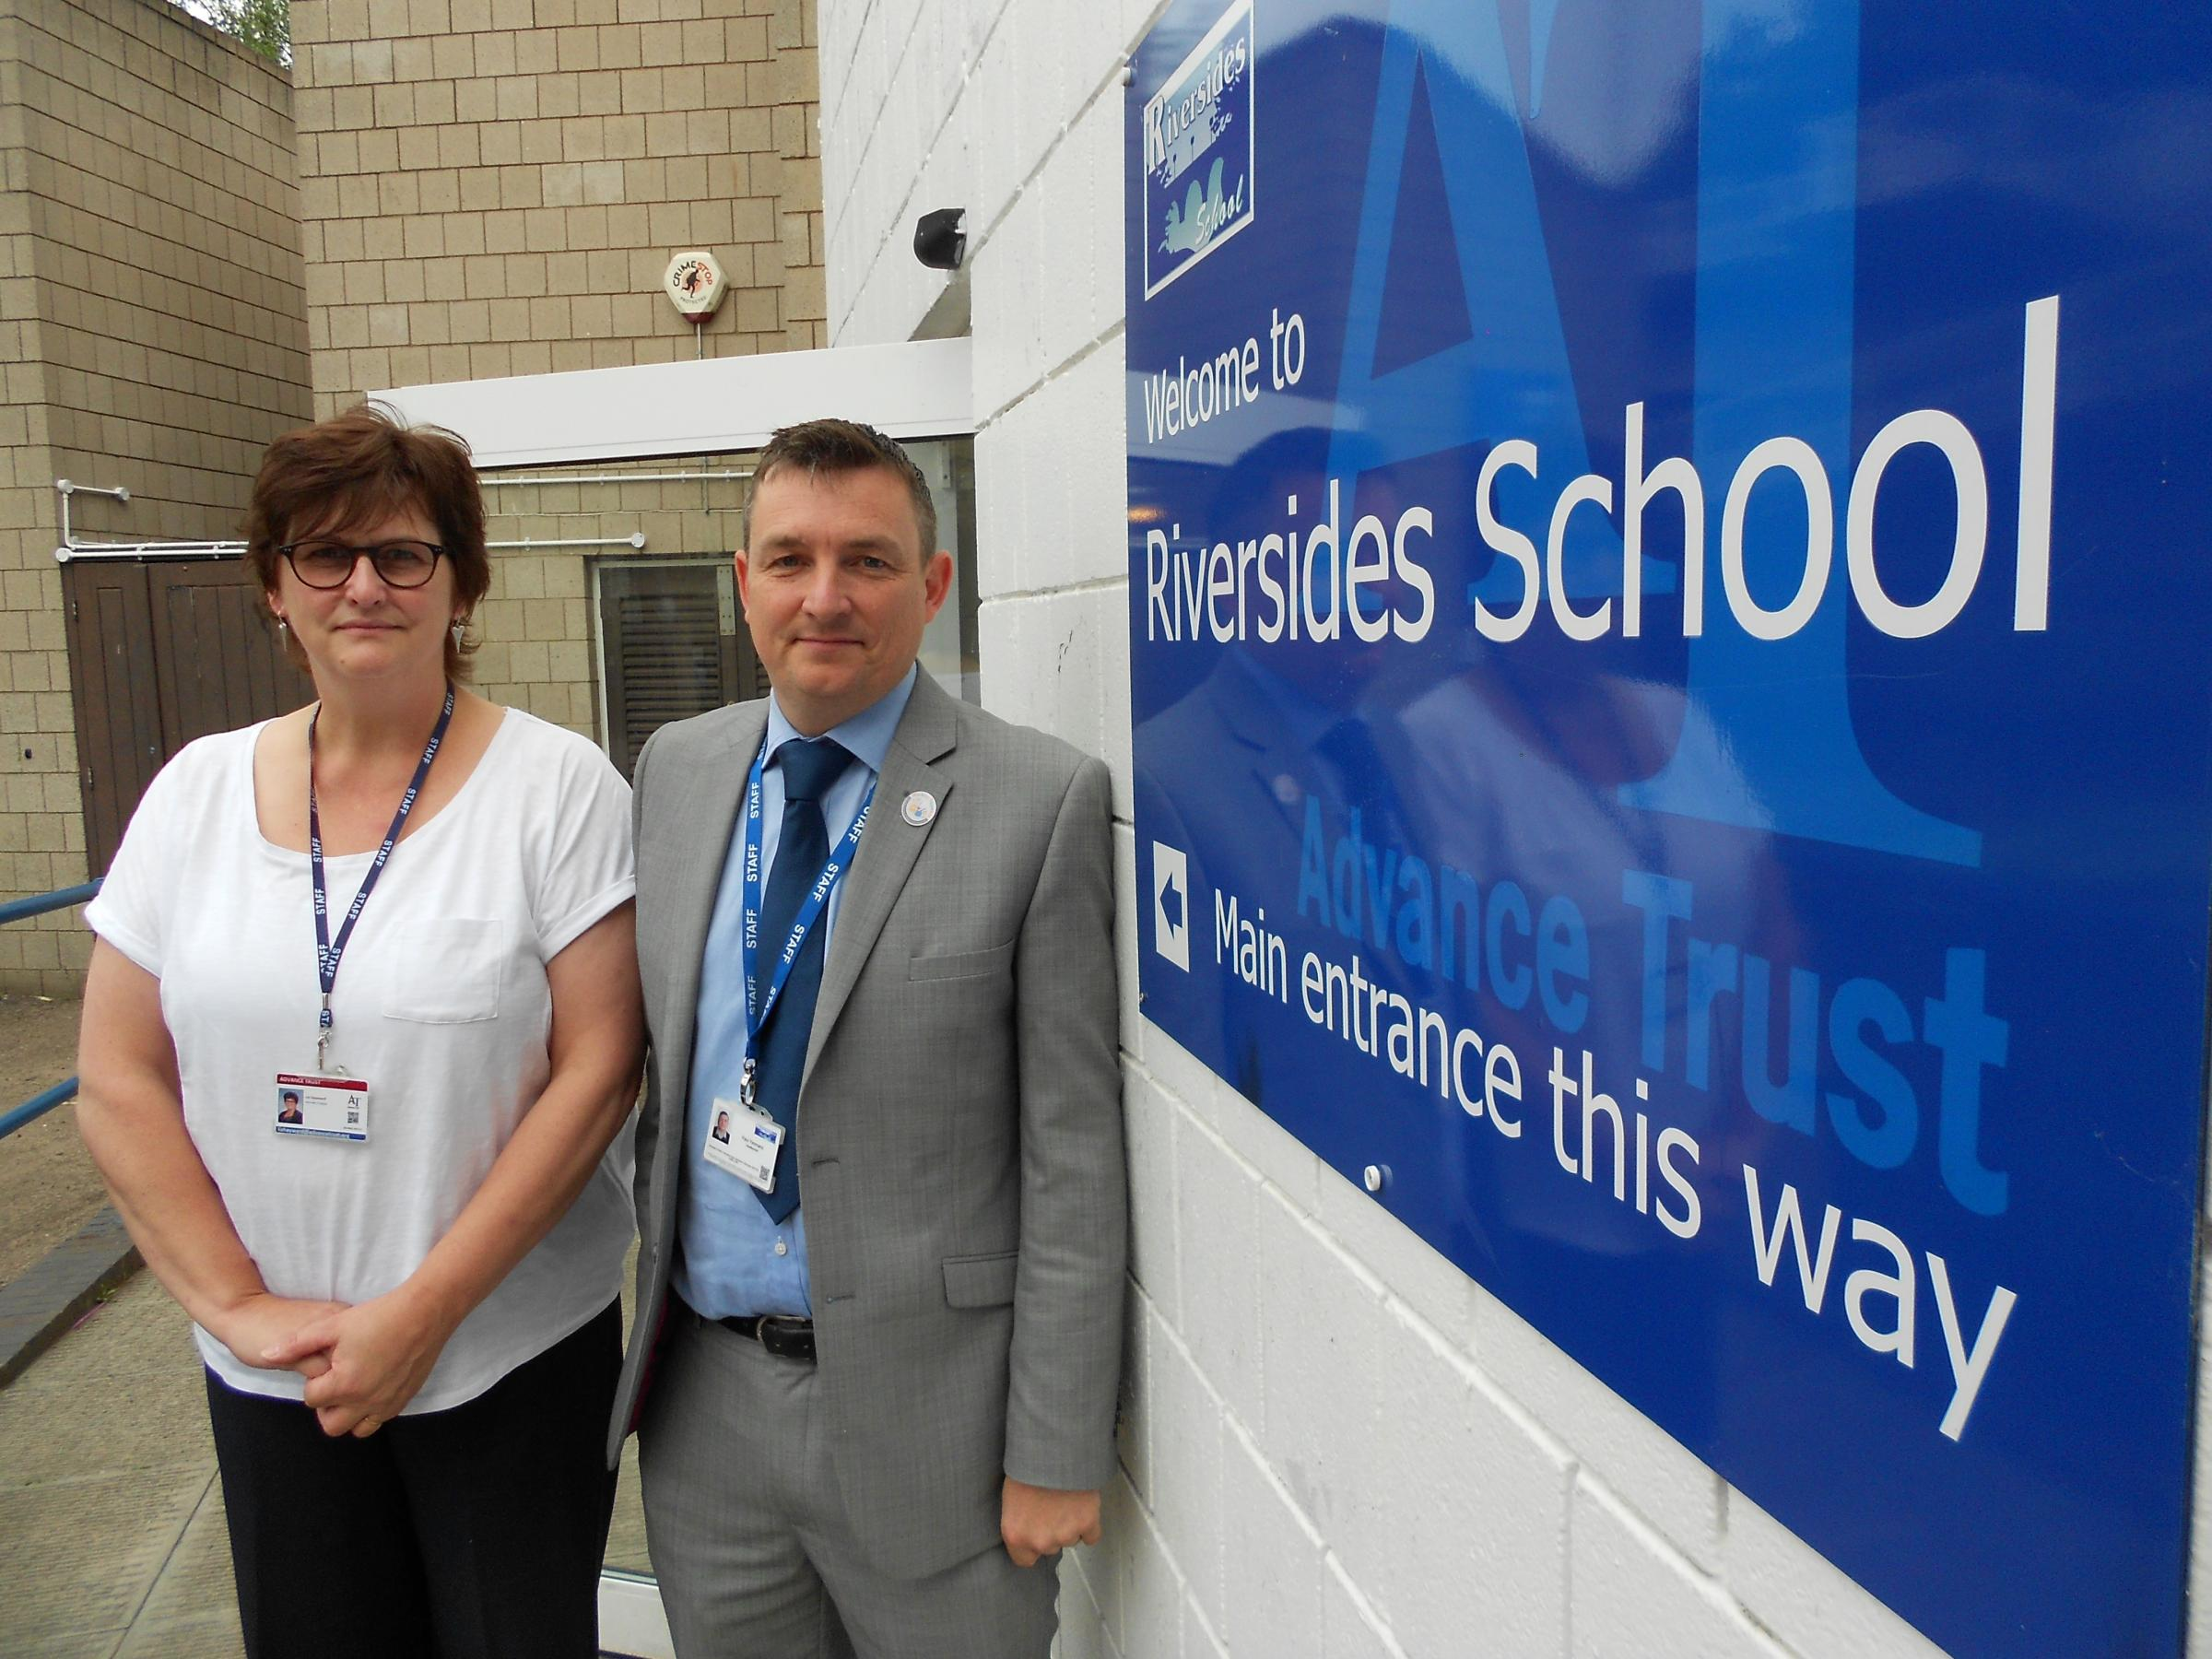 APPEAL FOR HELP: Riversides School headteacher Paul Yeomans (right) and executive principal Liz Hayward (left)